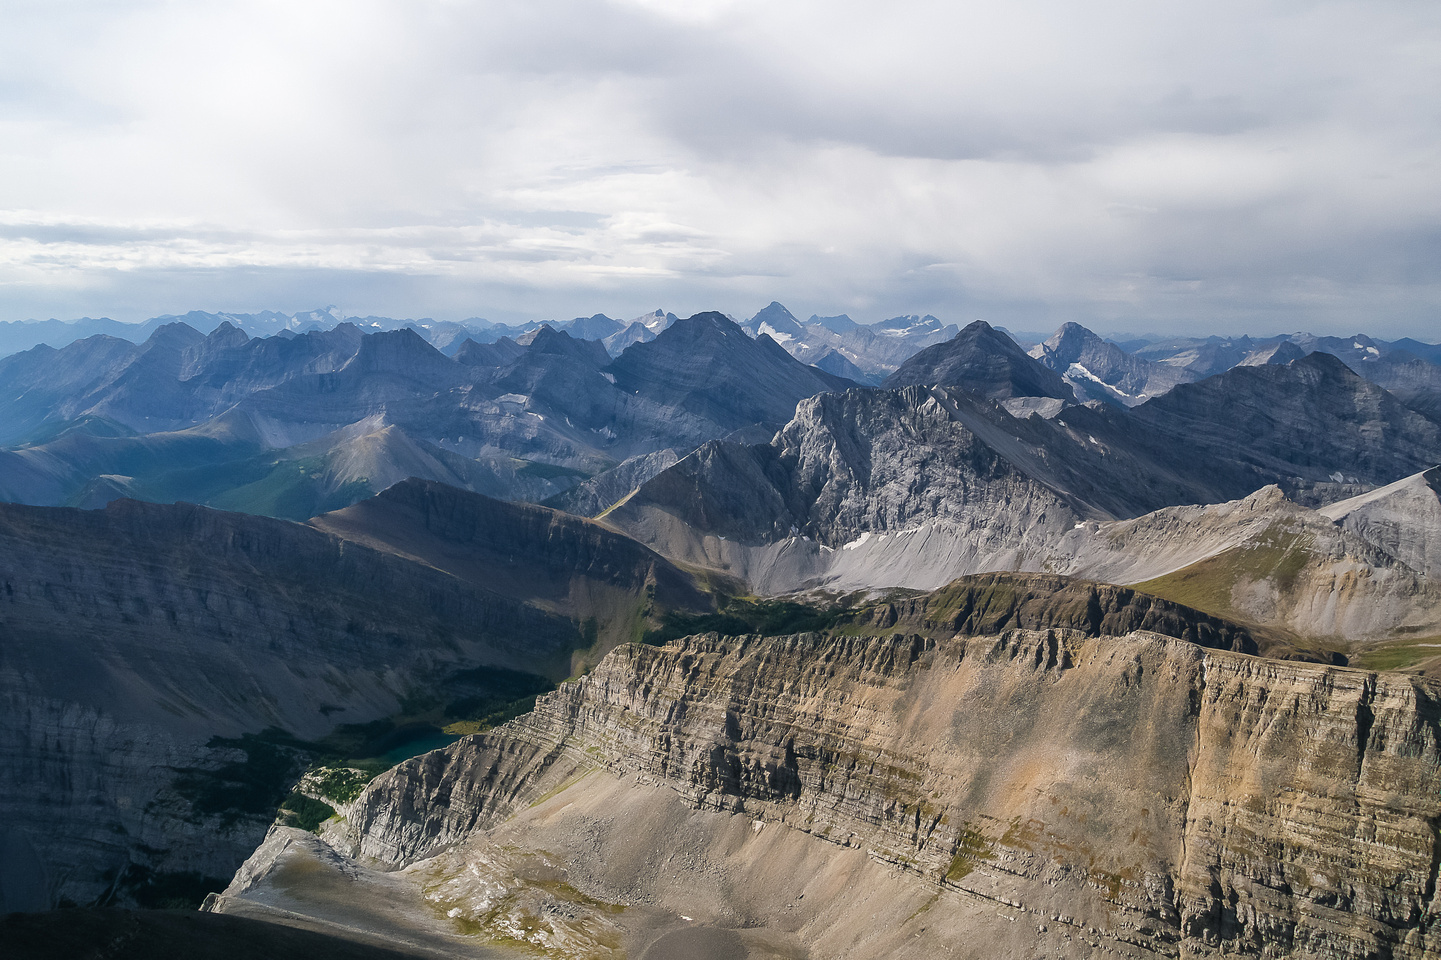 Looking to the Spray Range over Ribbon Lakes (L).